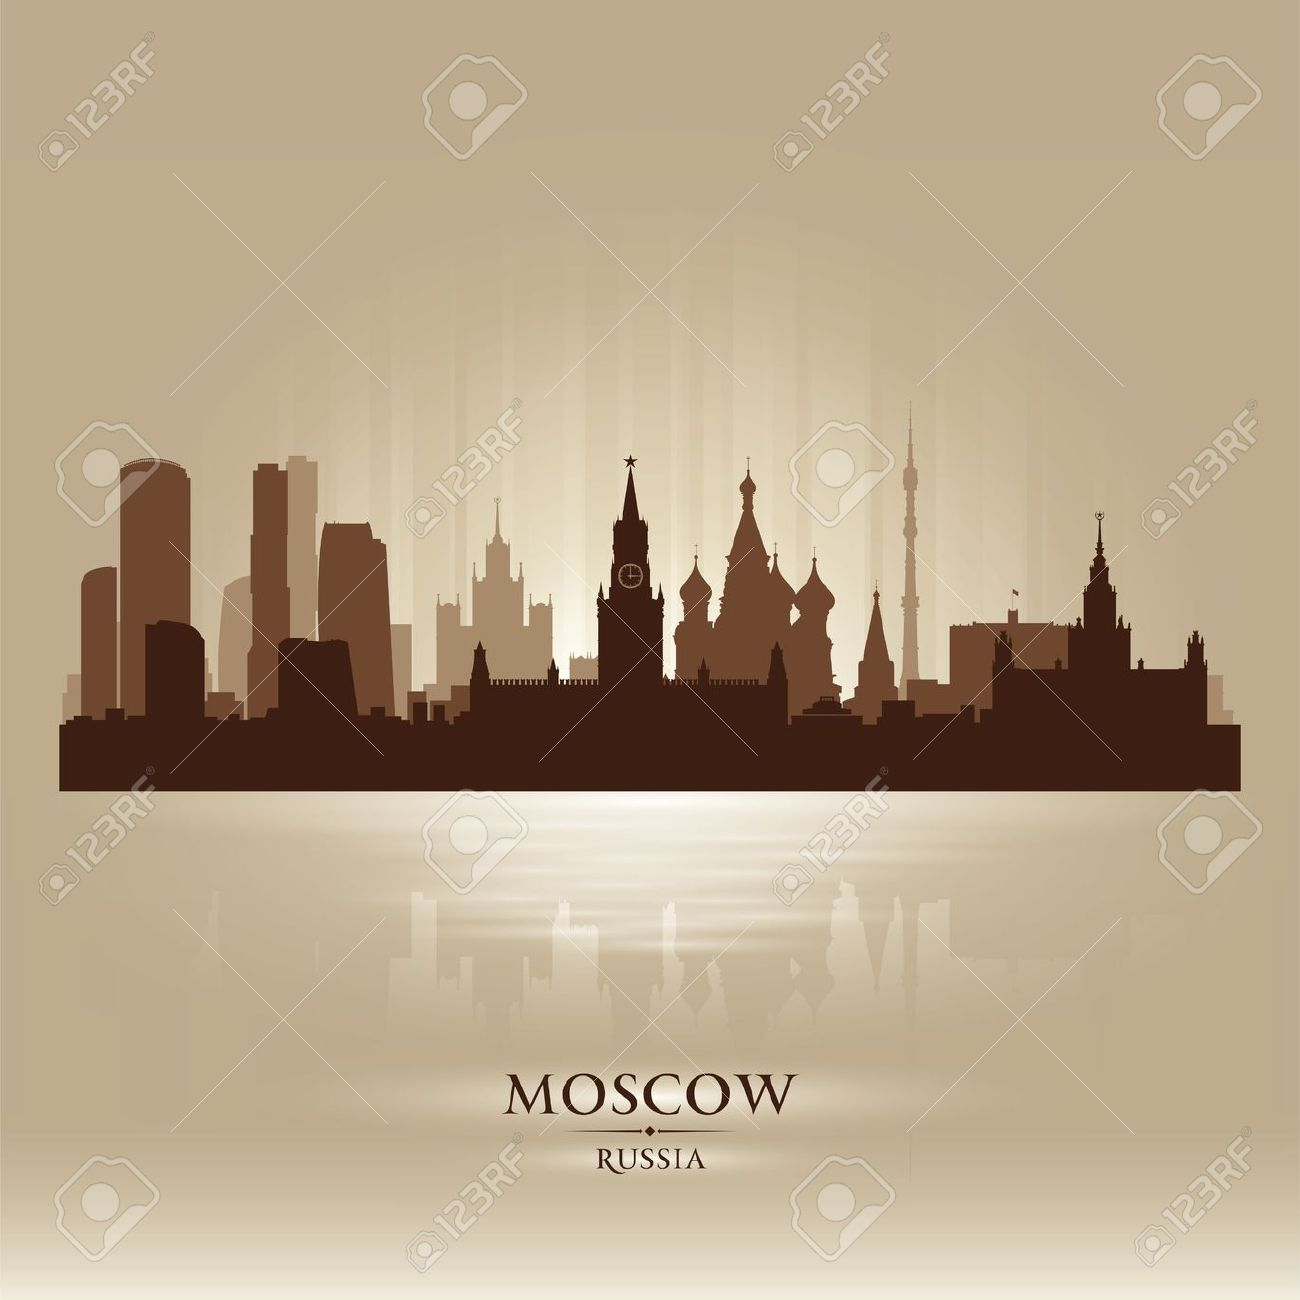 Moscow Russia Skyline City Silhouette Royalty Free Cliparts.